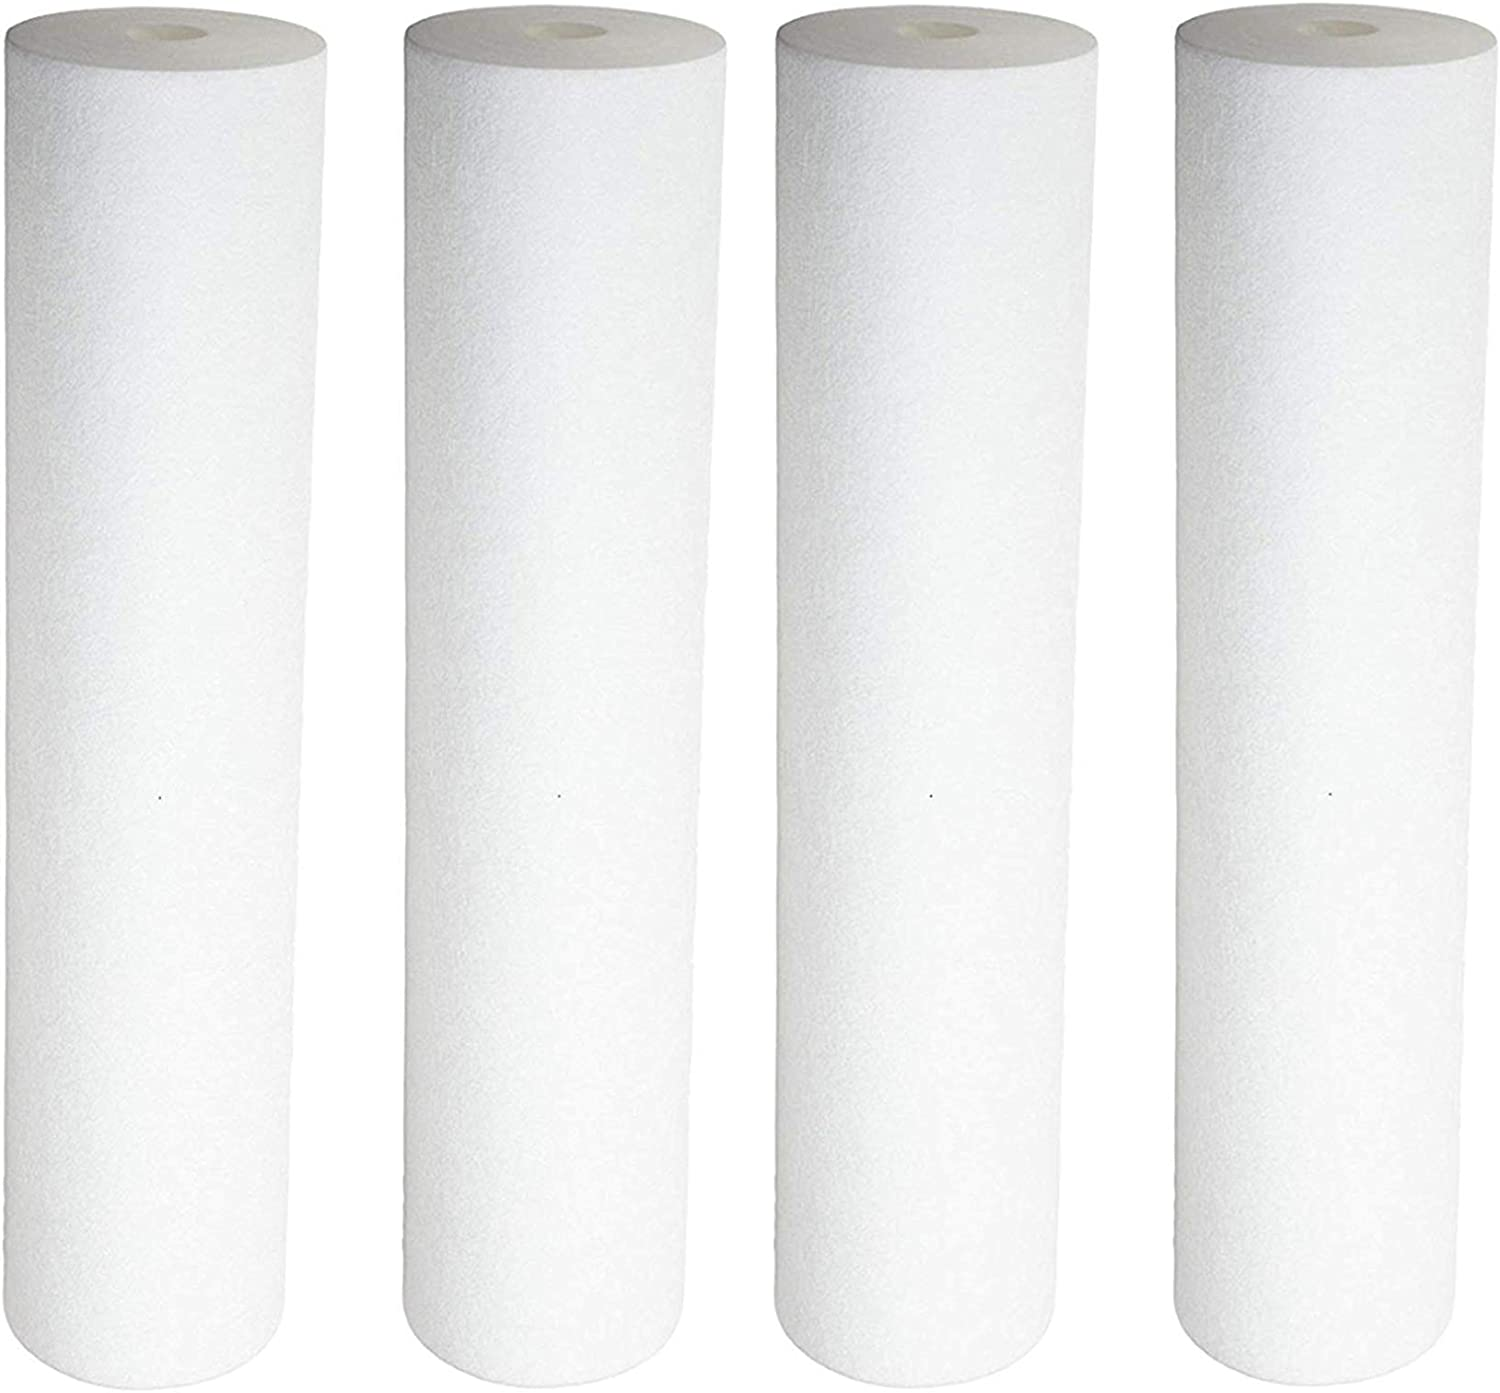 AP110 Filter KW2510G 5 Micron Dirt Sediment Water Filter Cartridge FXWTC Compatible for WHKF-GD05